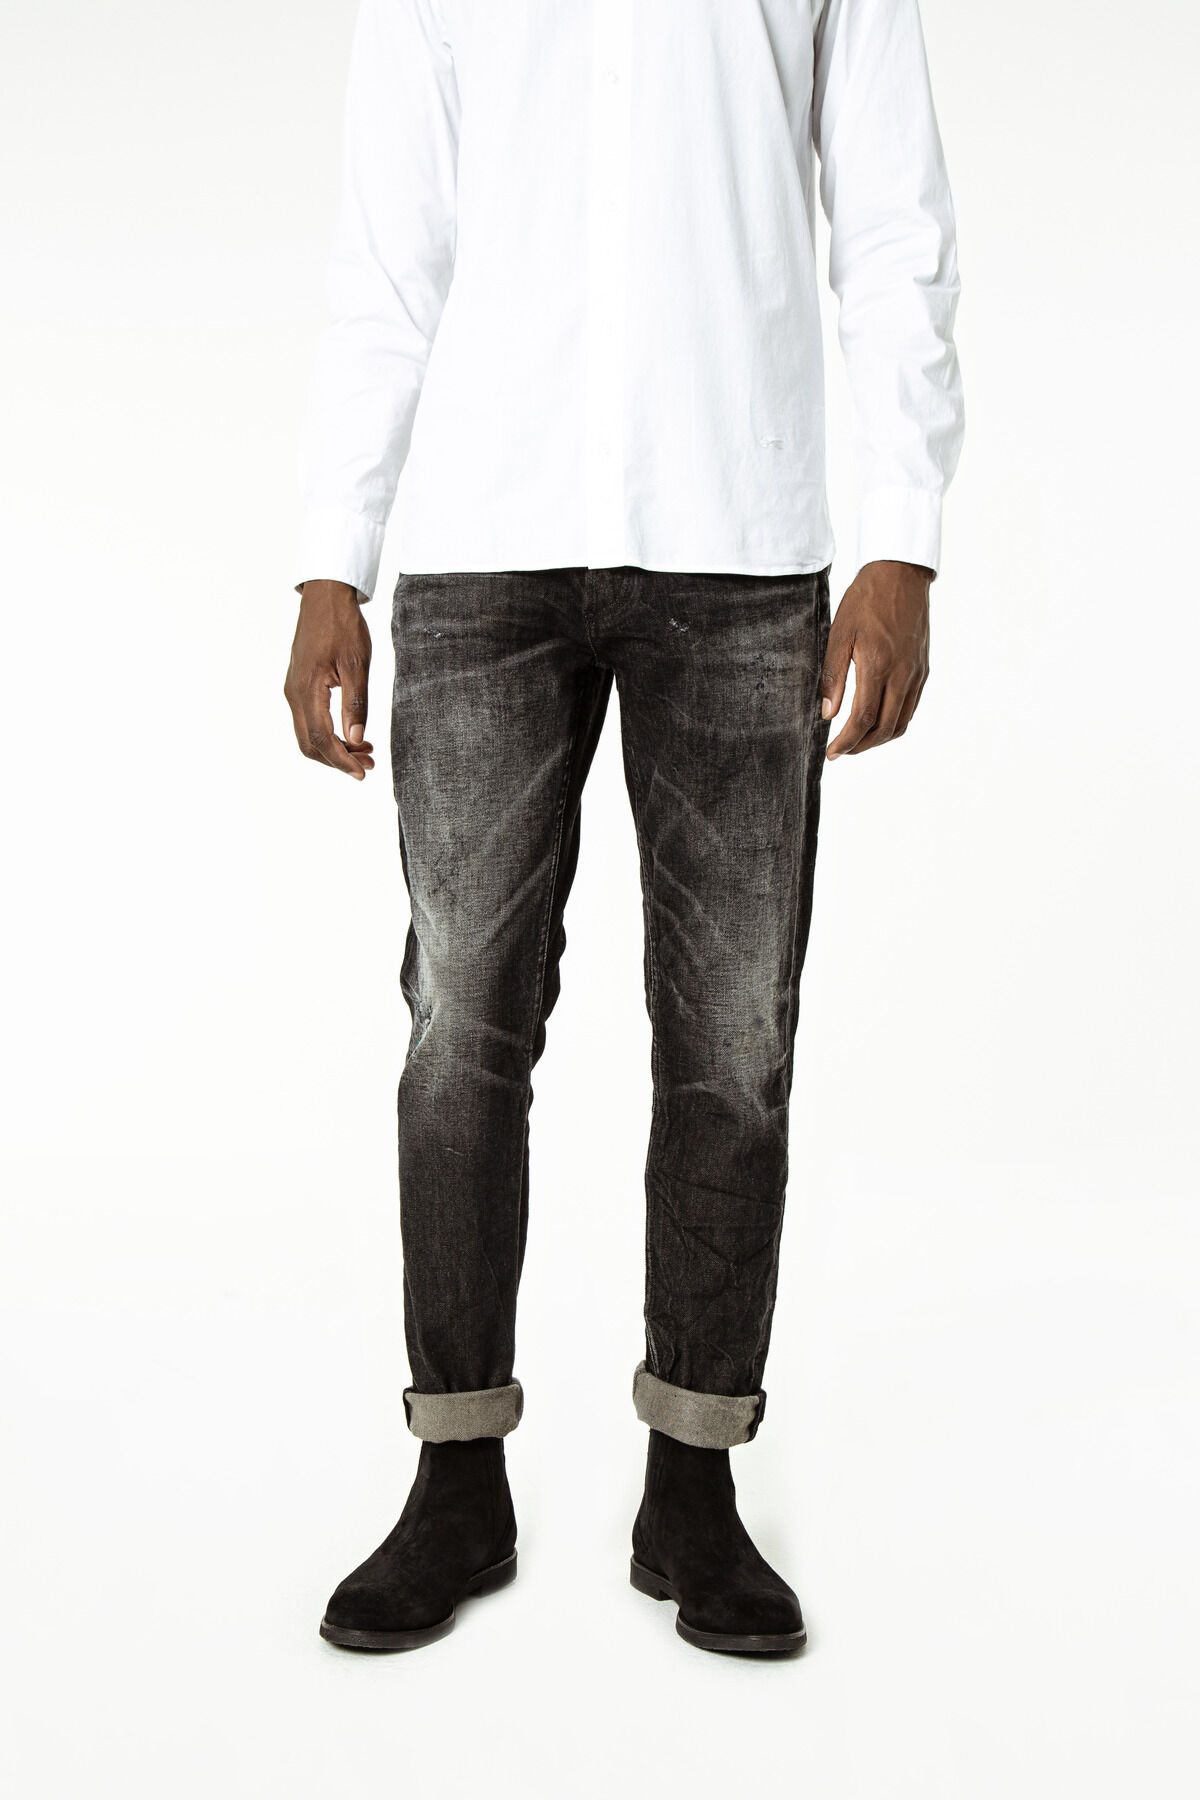 RAZOR Black Distressed Biker Denim - Slim Fit